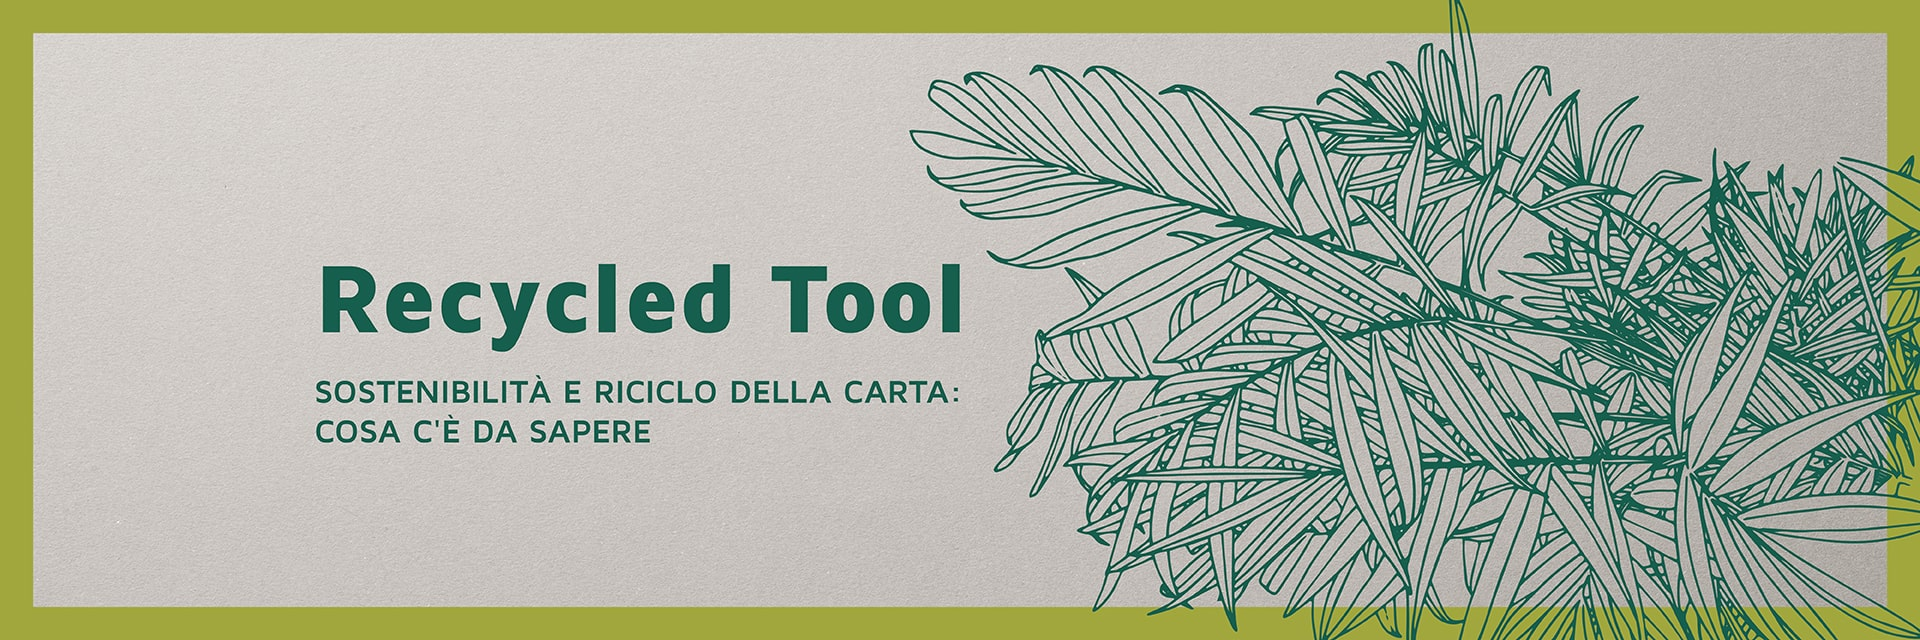 Banner Hp recycled tool italiano